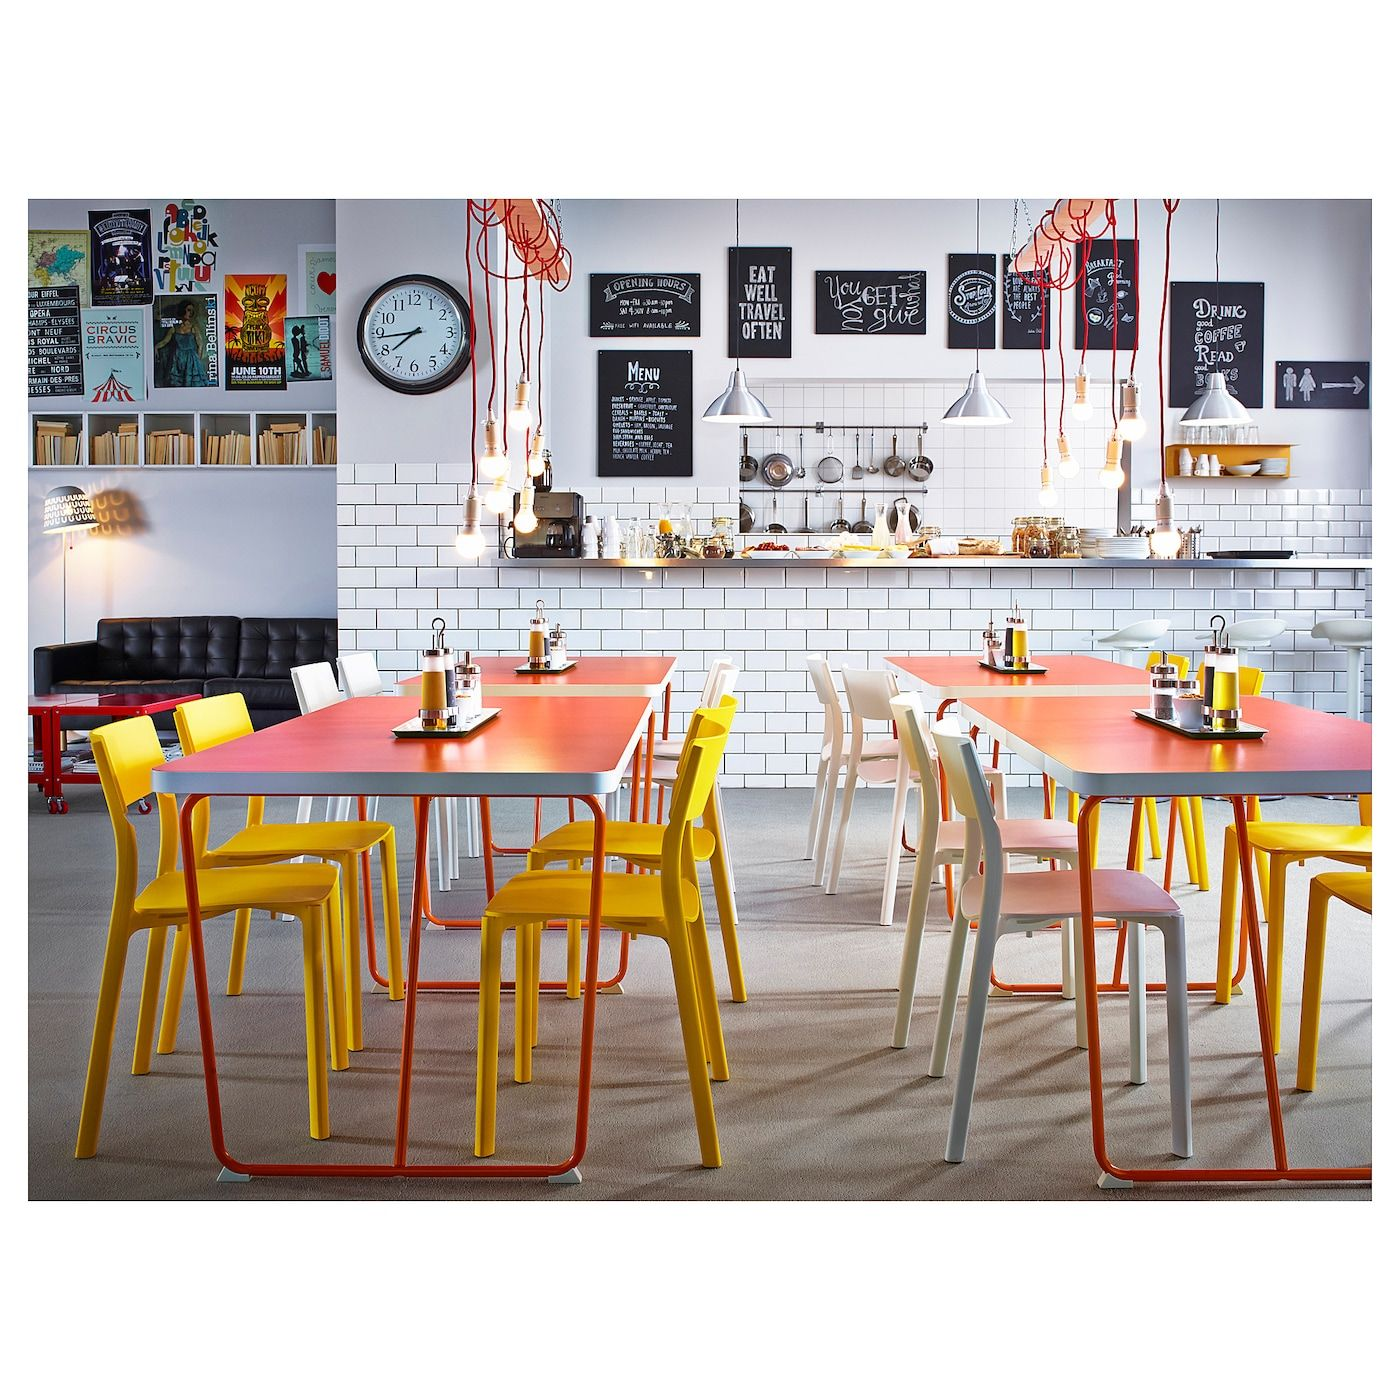 JANINGE Chair - yellow - IKEA in 9  Cafe furniture, Restaurant